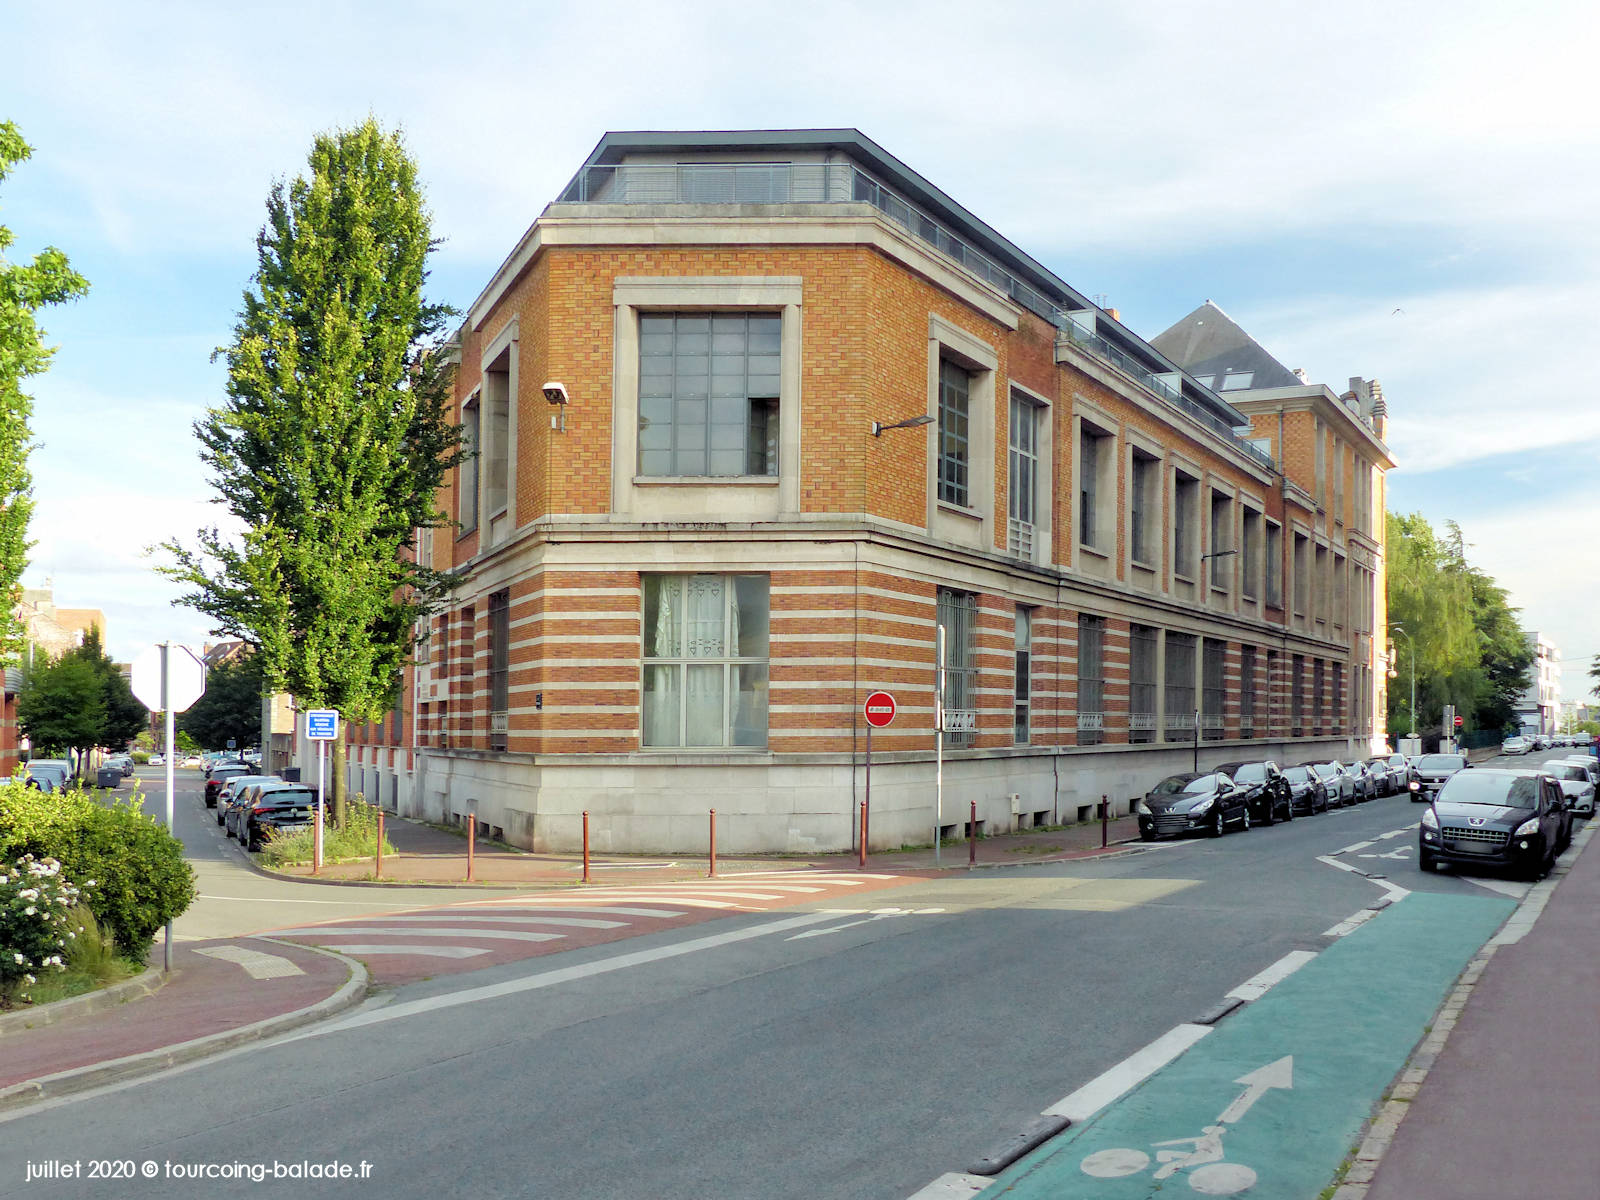 Ancienne Poste, Tourcoing 2020